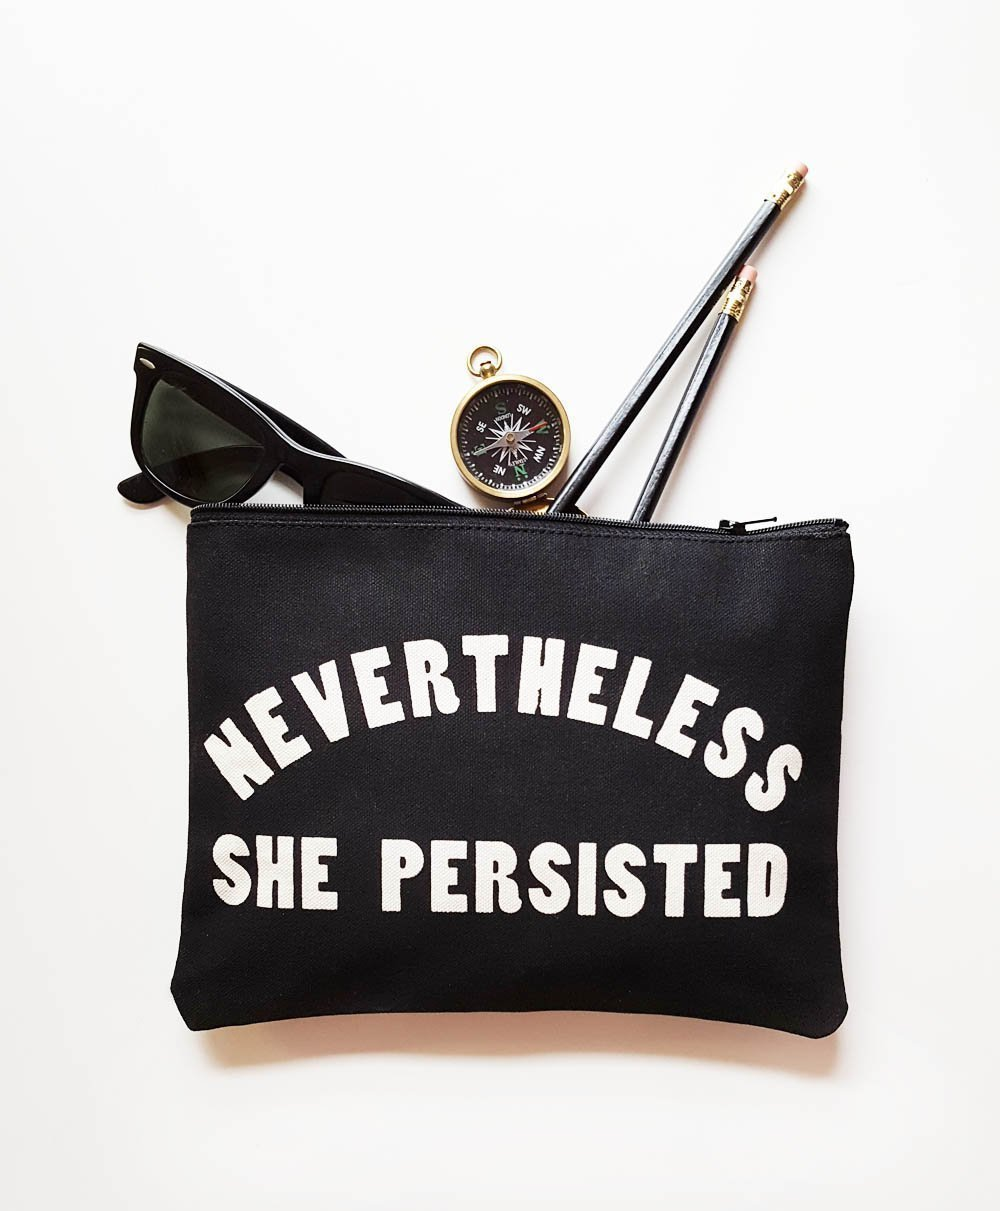 Nevertheless She Persisted Cotton Canvas Zipper Pouch Small Purse Made in USA